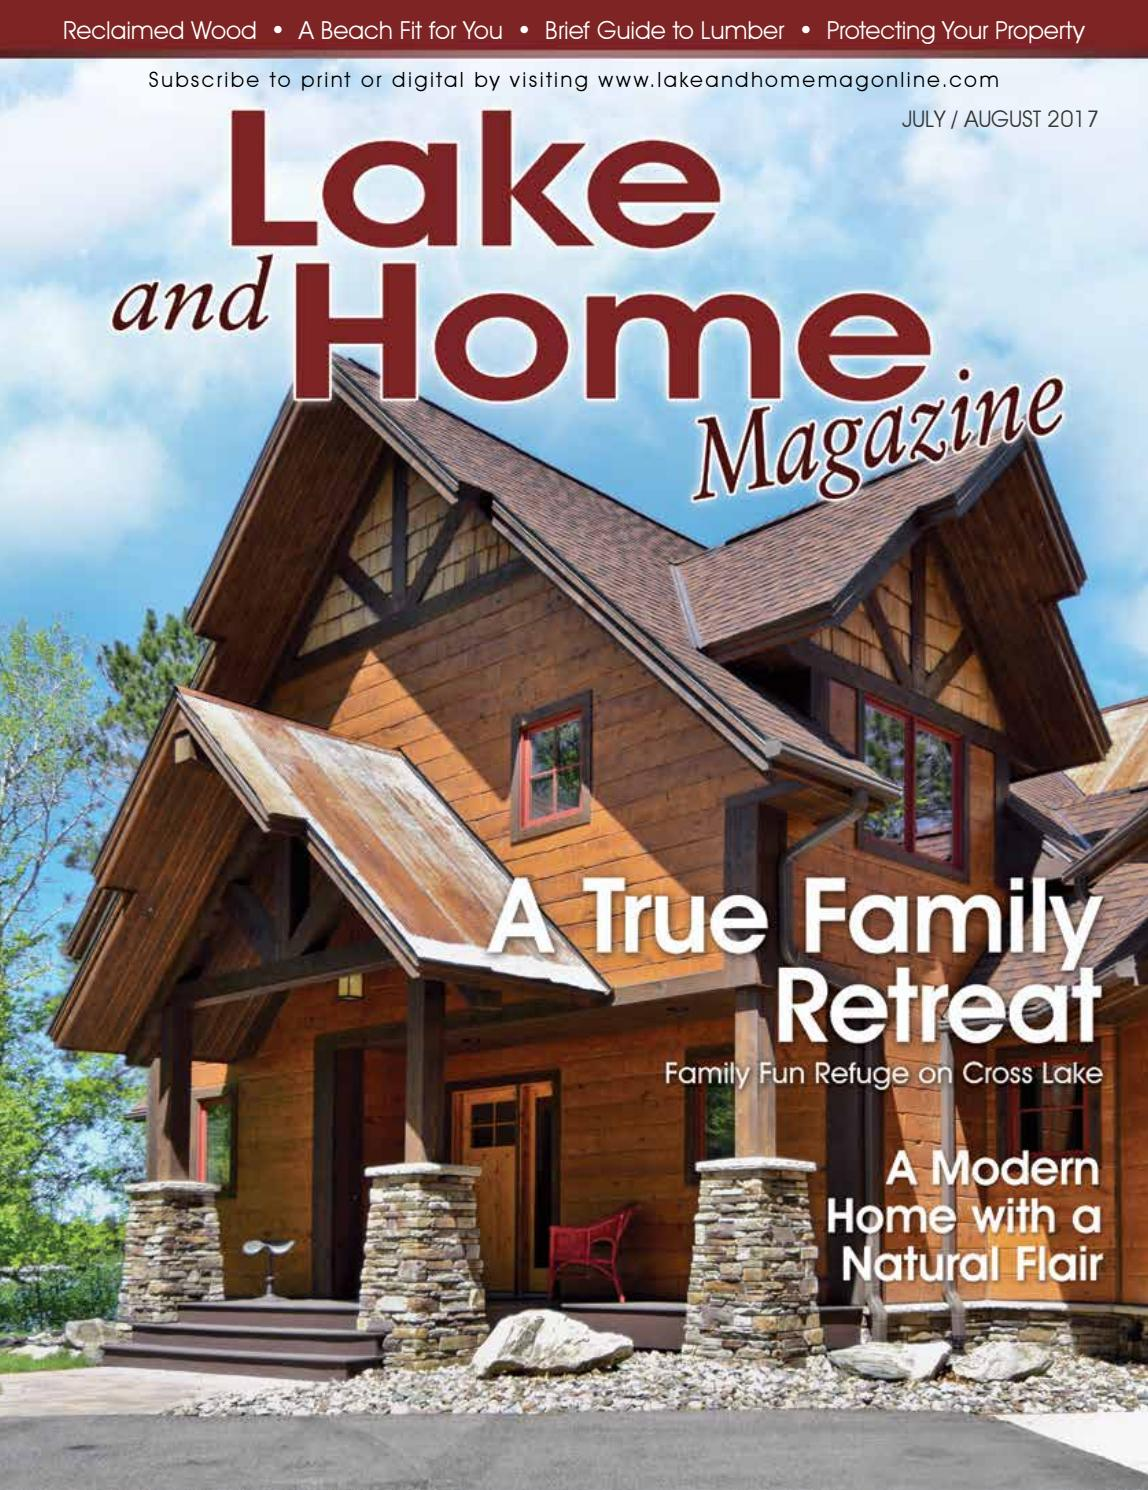 Lake and Home Magazine - July/August 2017 by CompassMedia - issuu